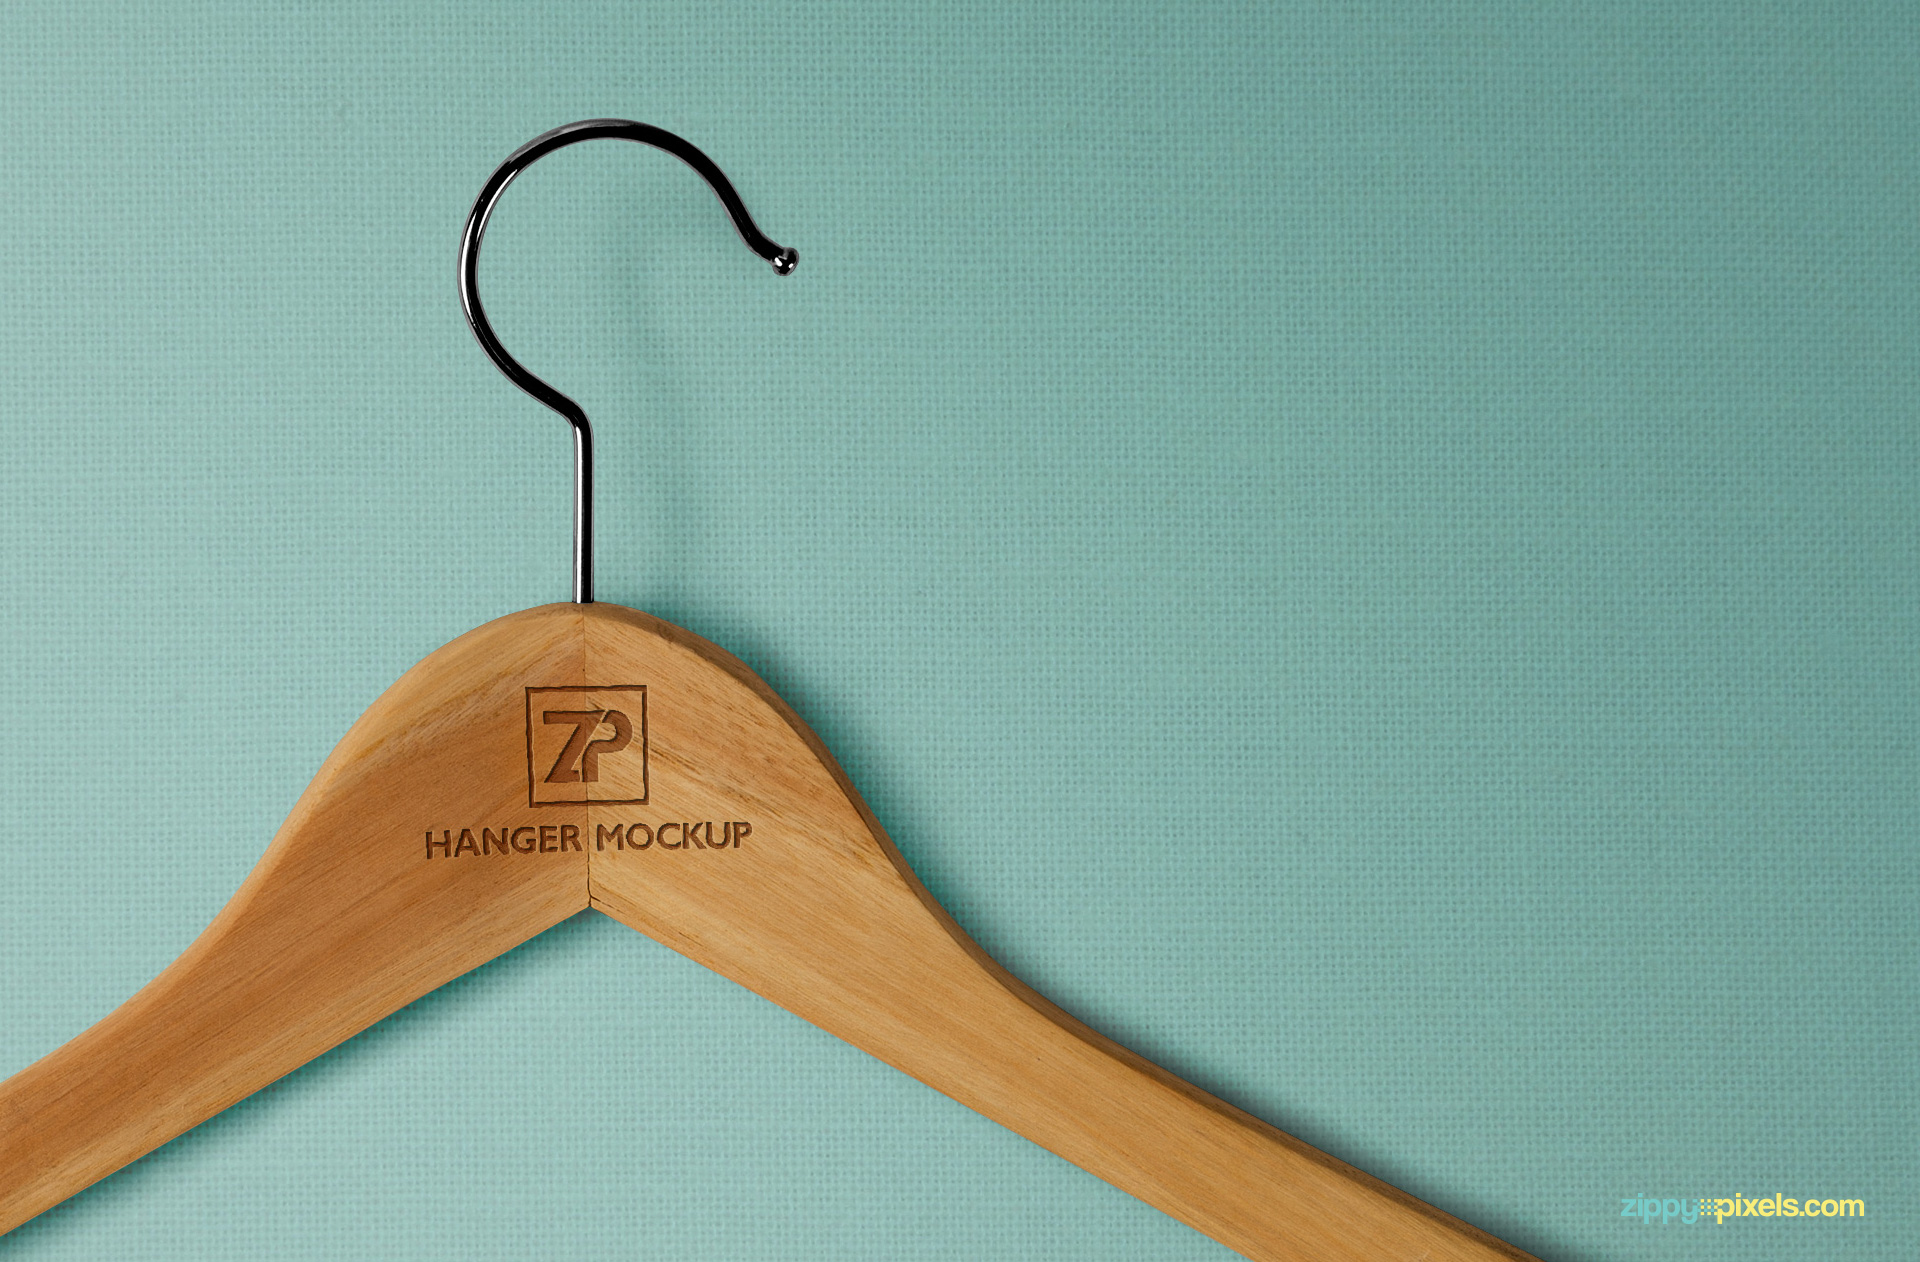 Free hanger mockups to compliment your clothing brand designs.